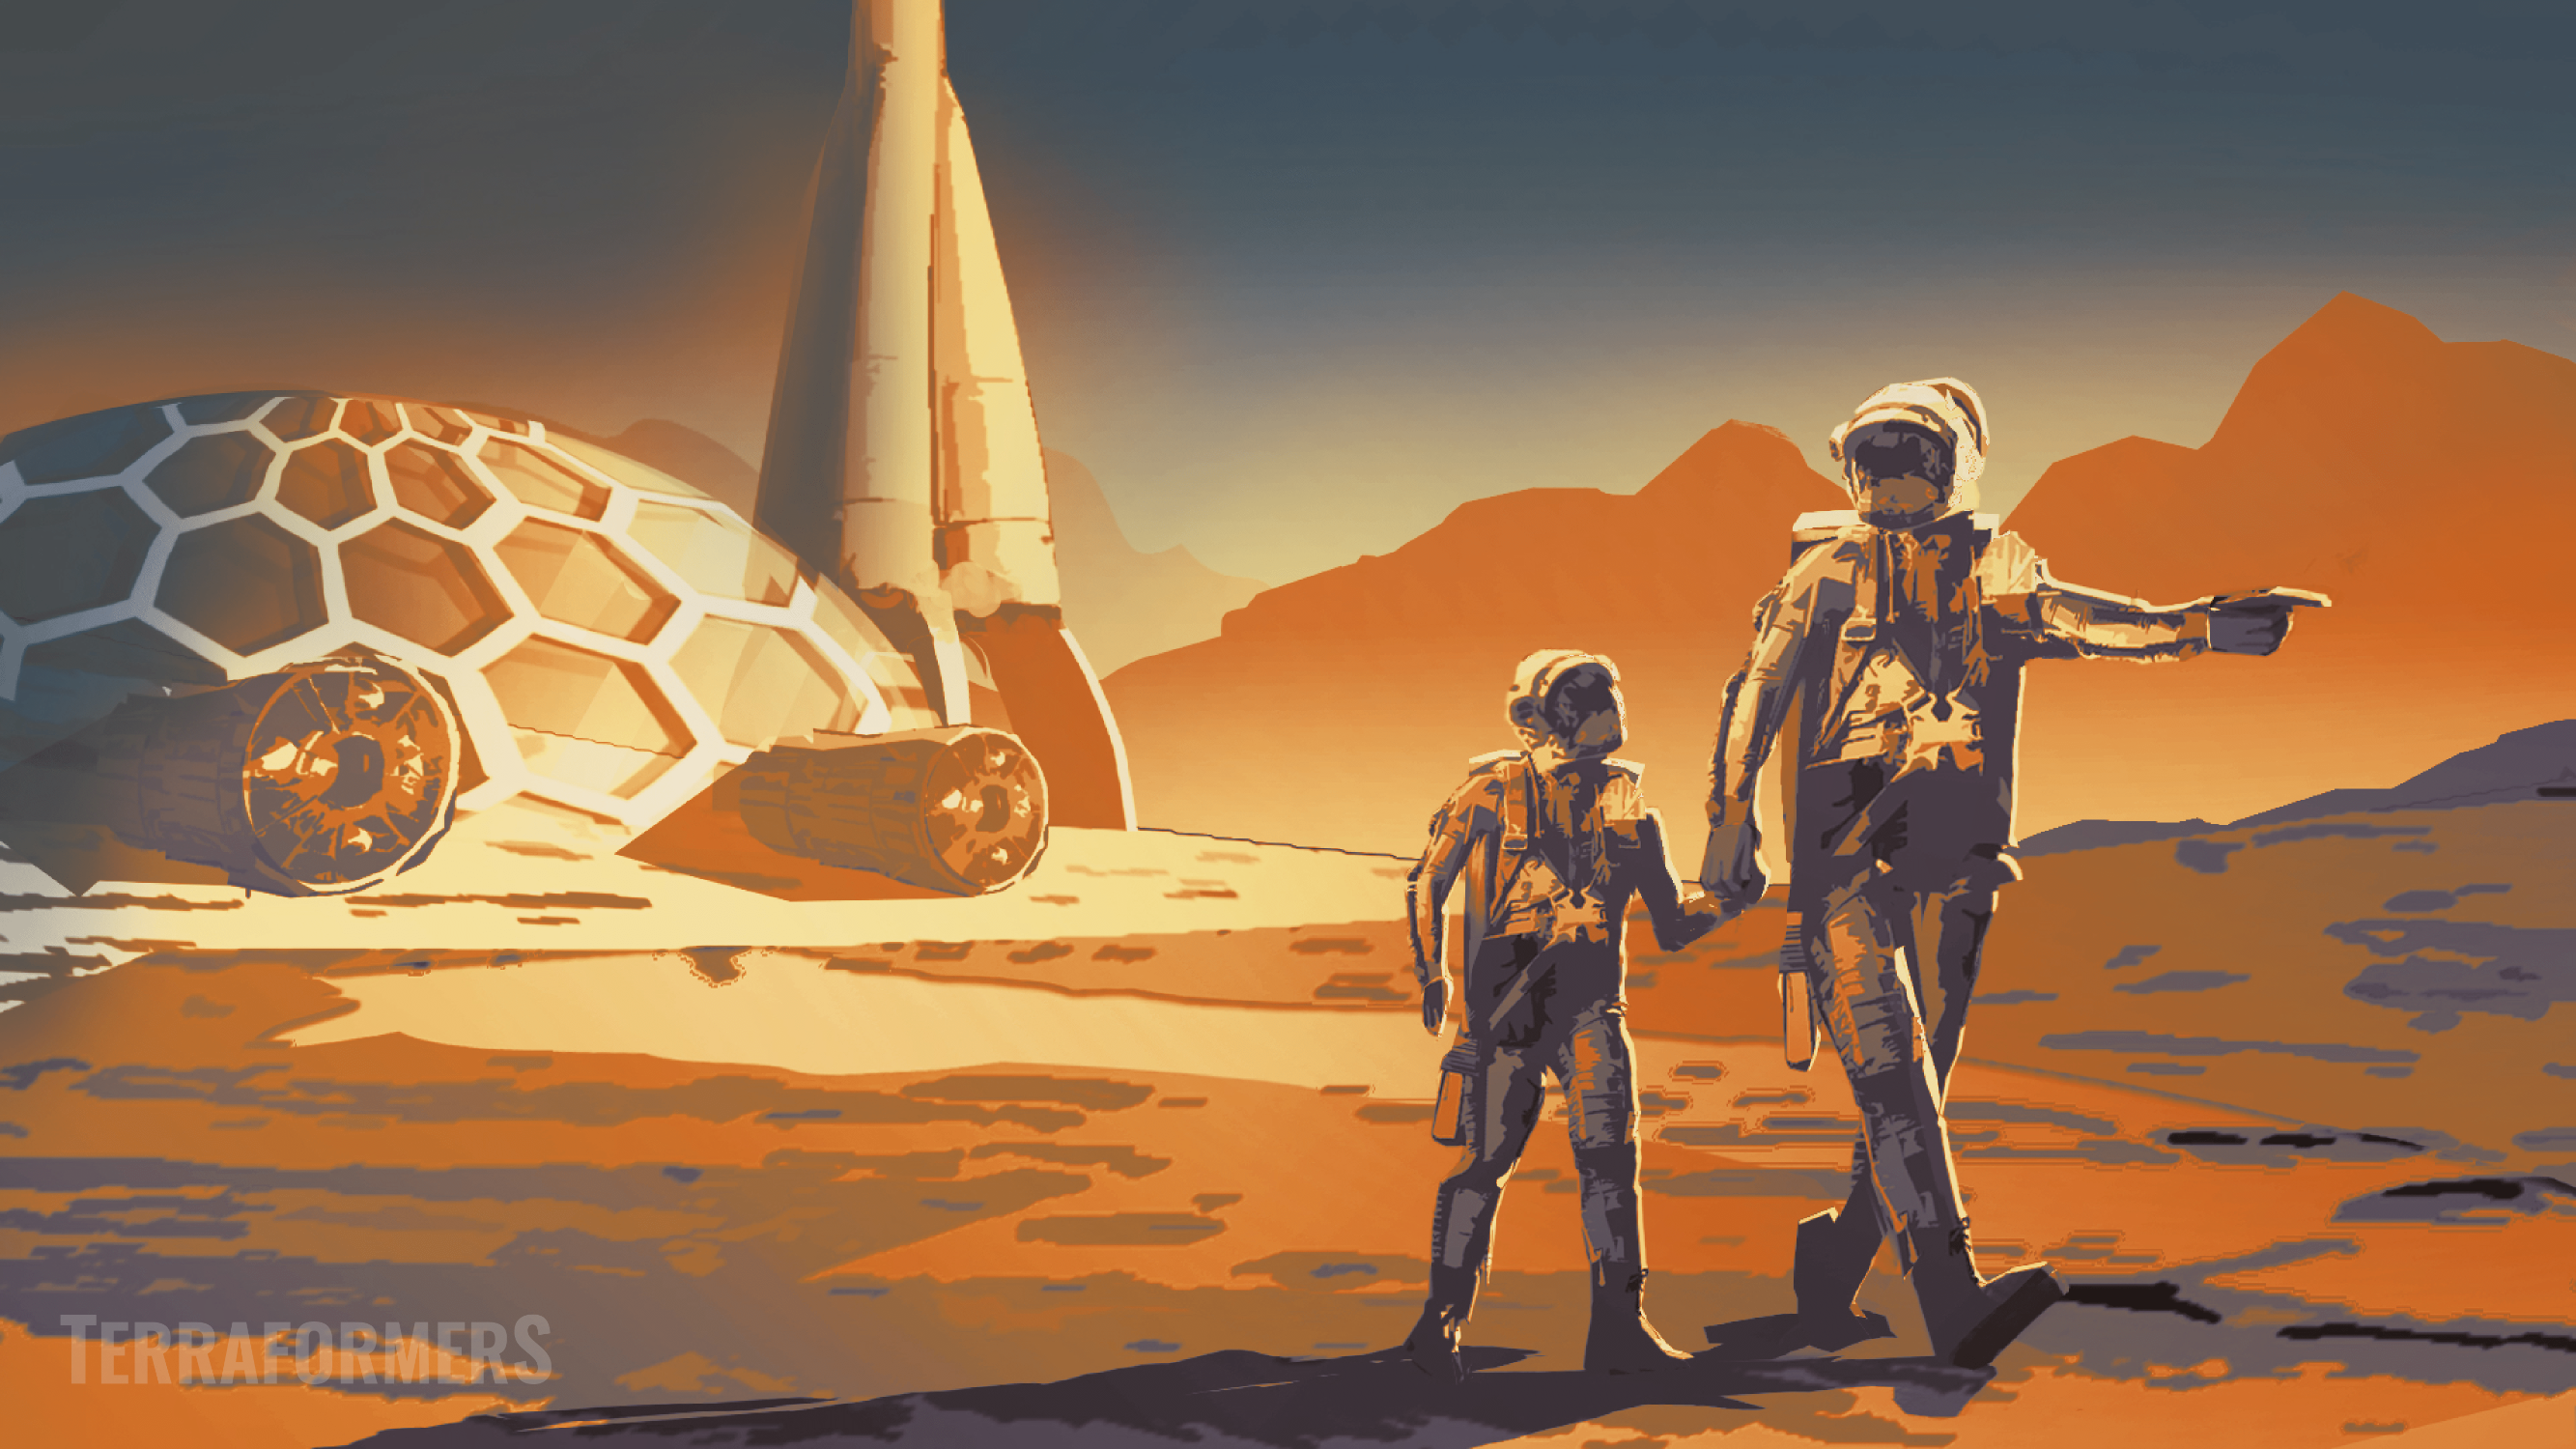 Dome city on Mars, with a girl an her father in martian space suits.